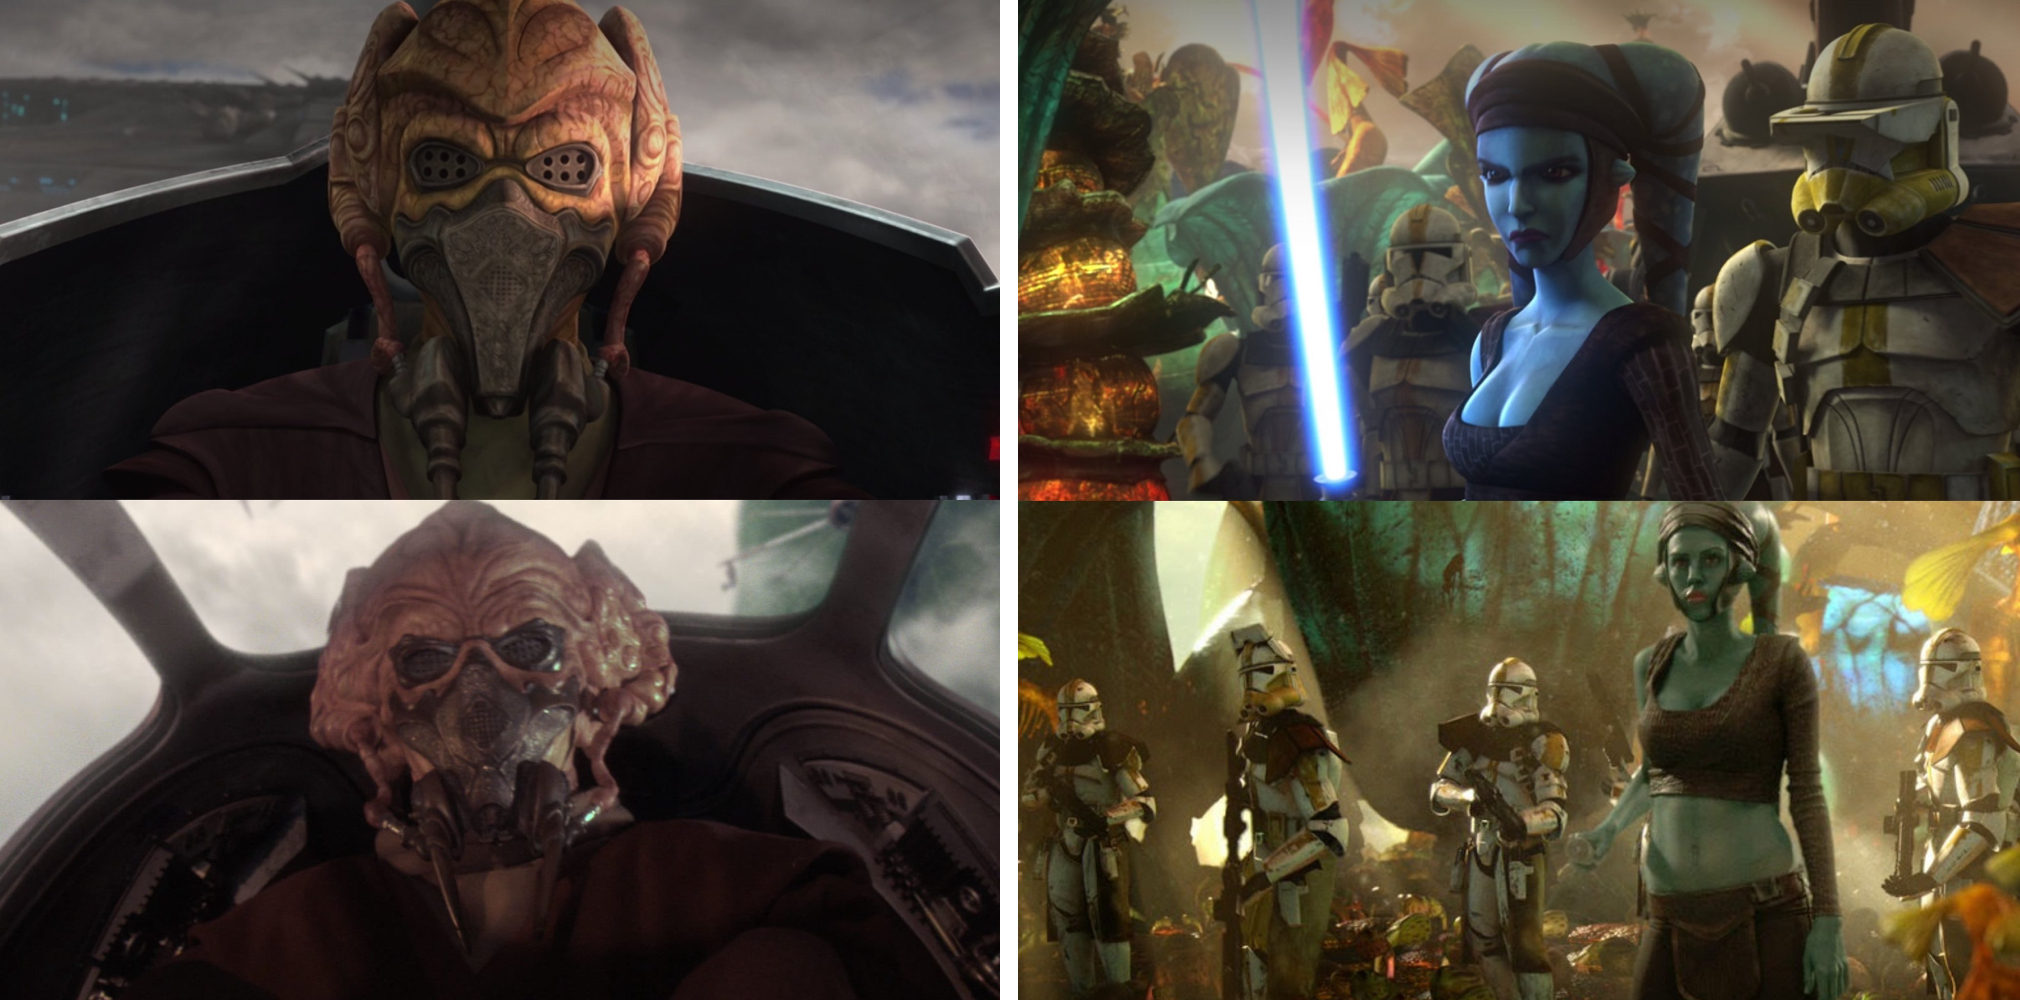 Star Wars The Clone Wars The Final Season Episode 9 Foreshadows The Jedi Purge A K A Order 66